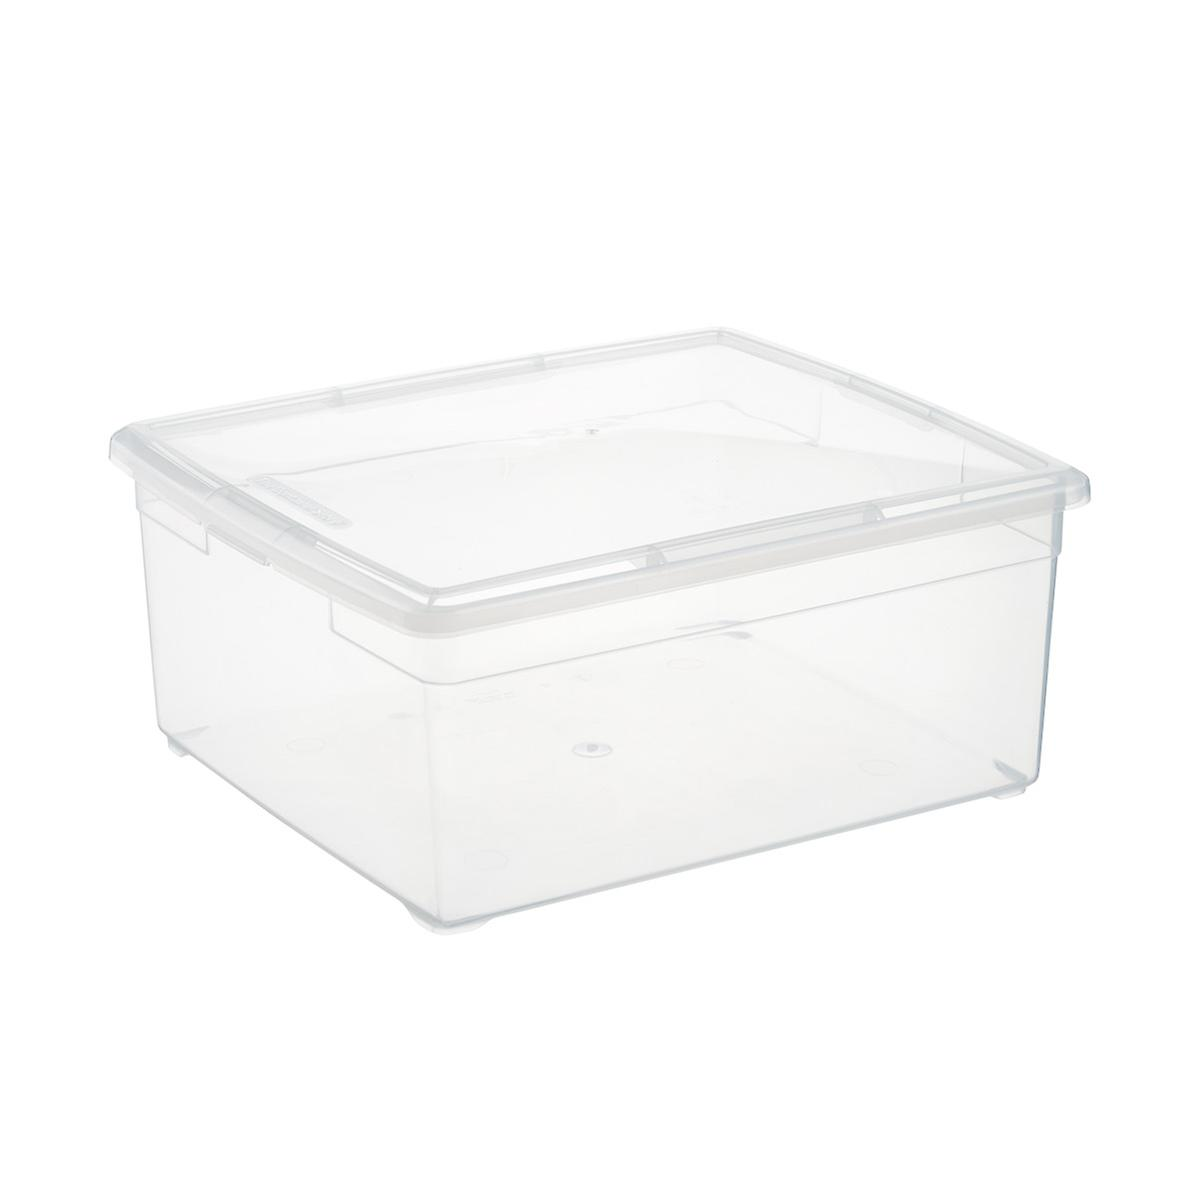 Clear Plastic Storage Boxes Our Clear Storage Boxes The Container Store